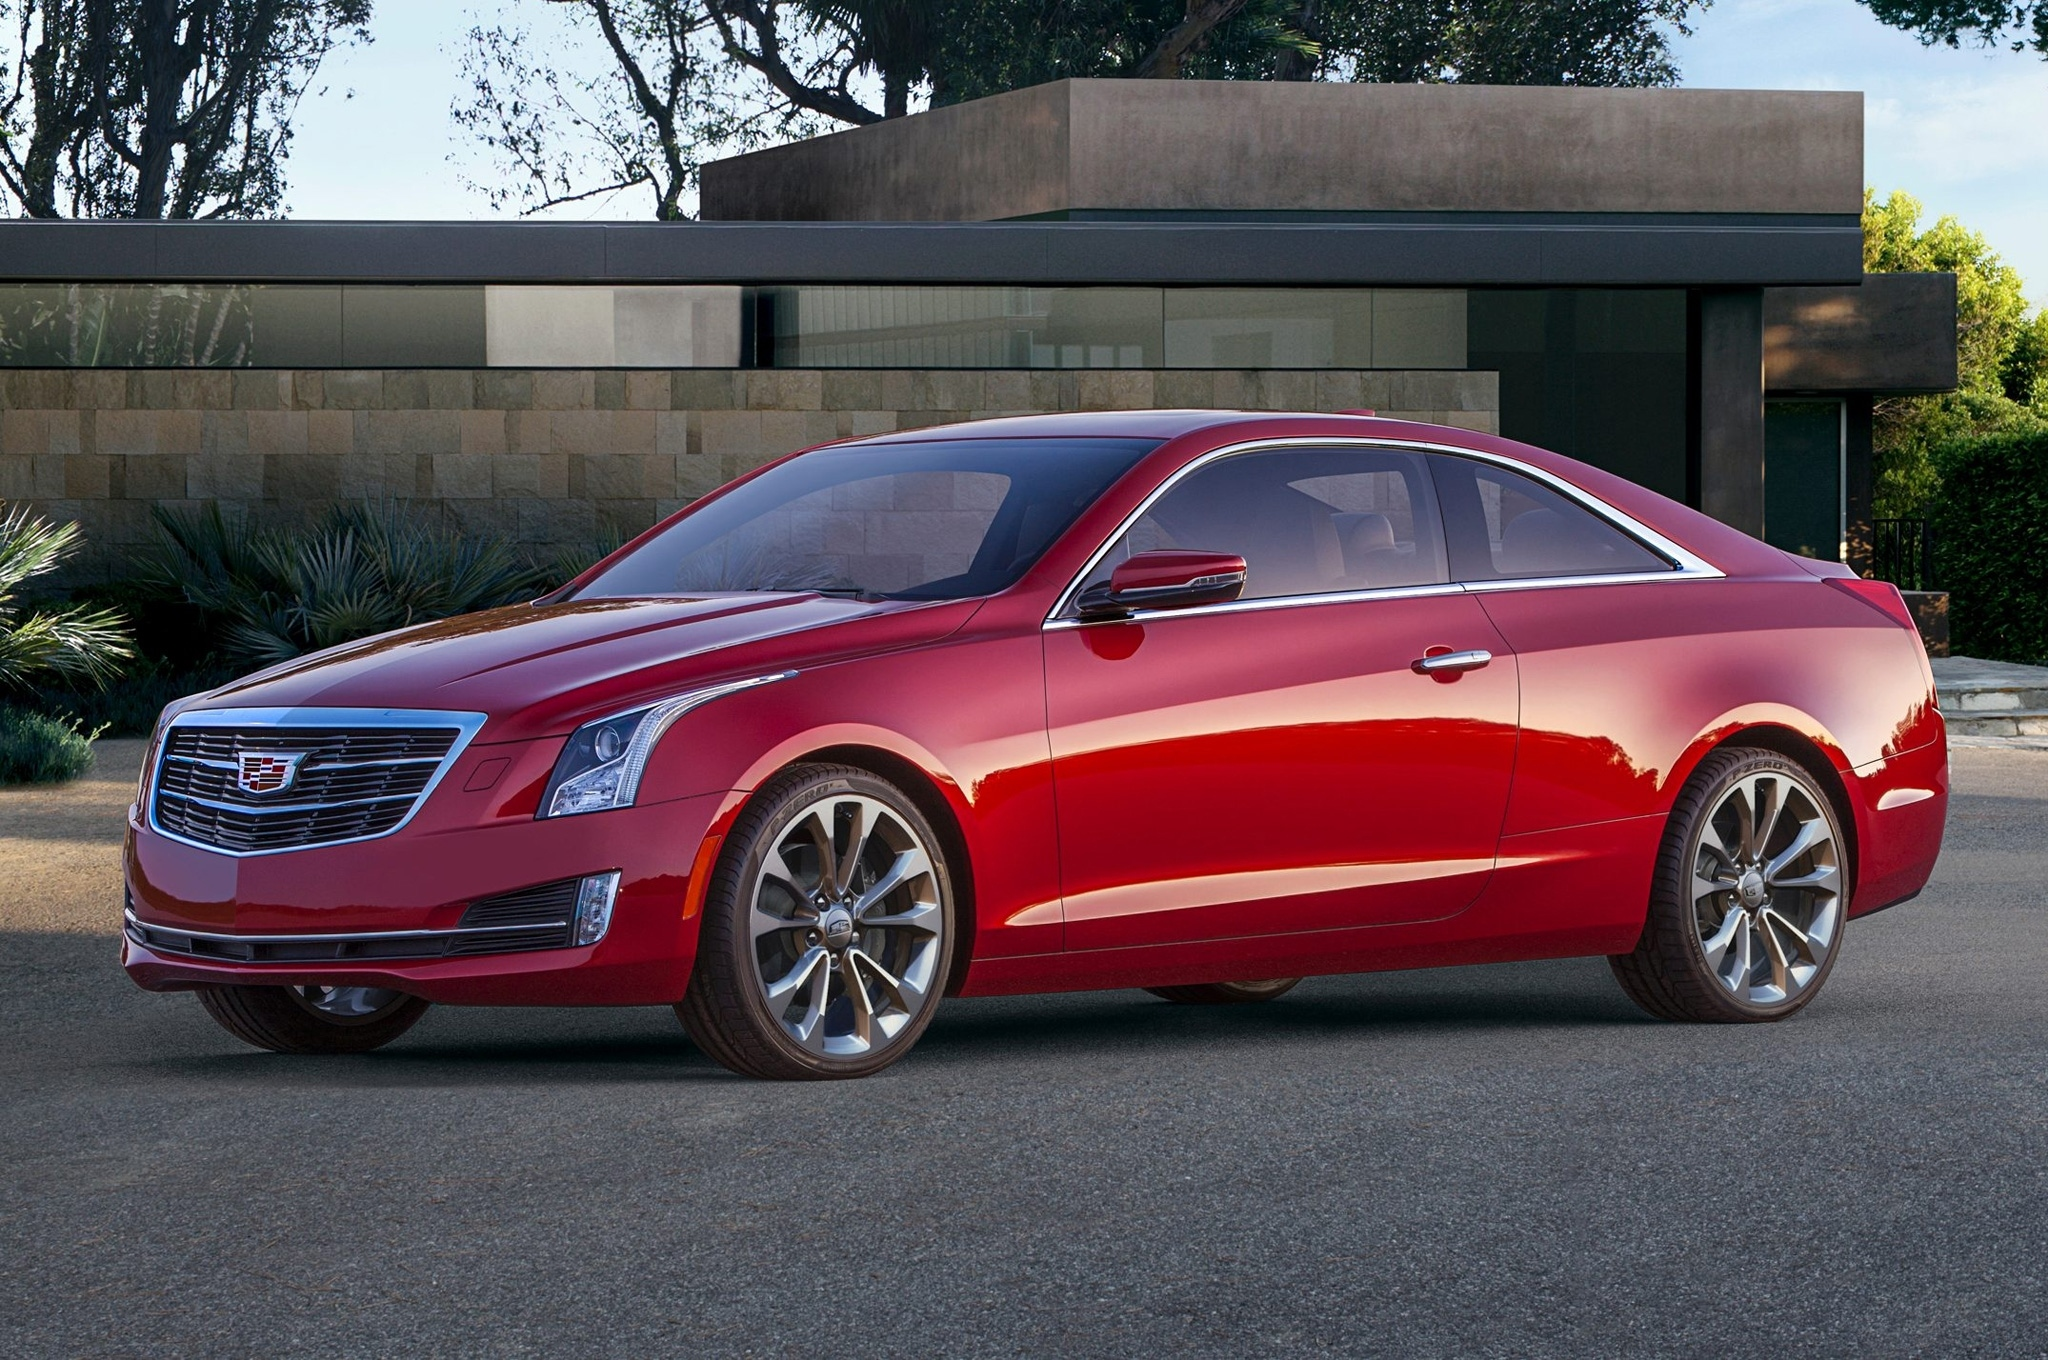 2015-Cadillac-ATS-Coupe-red--front-side-view